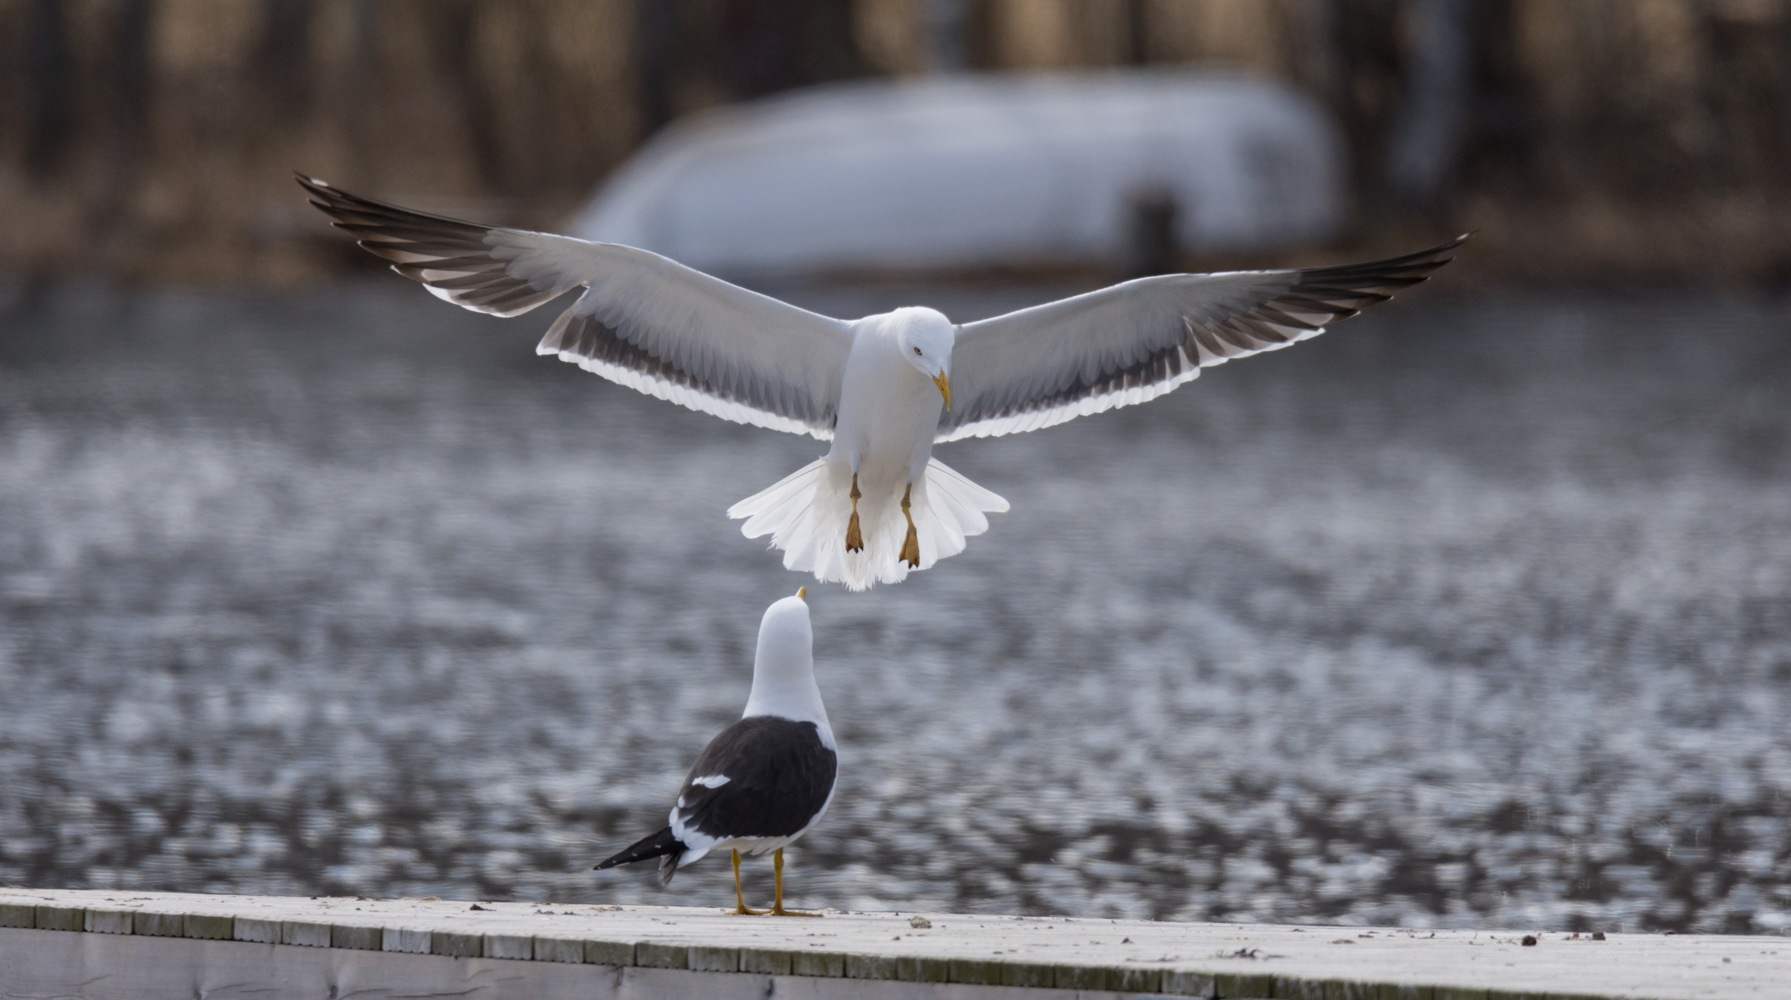 Coming in for a landing by Petri Pihlaja